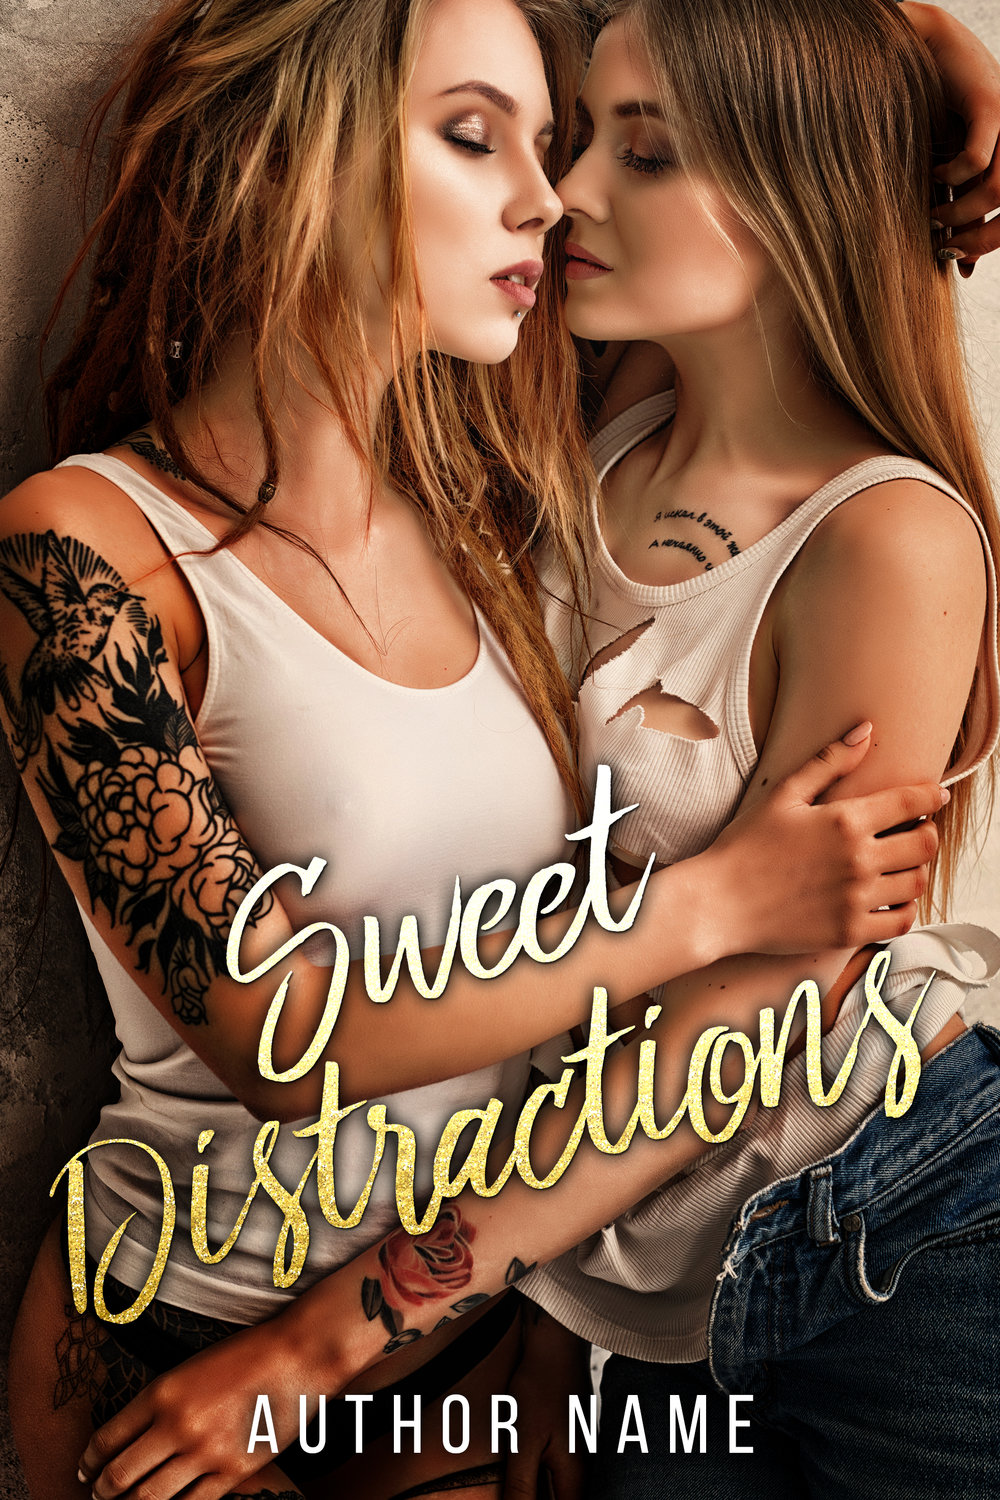 $100 - Sweet Distractions